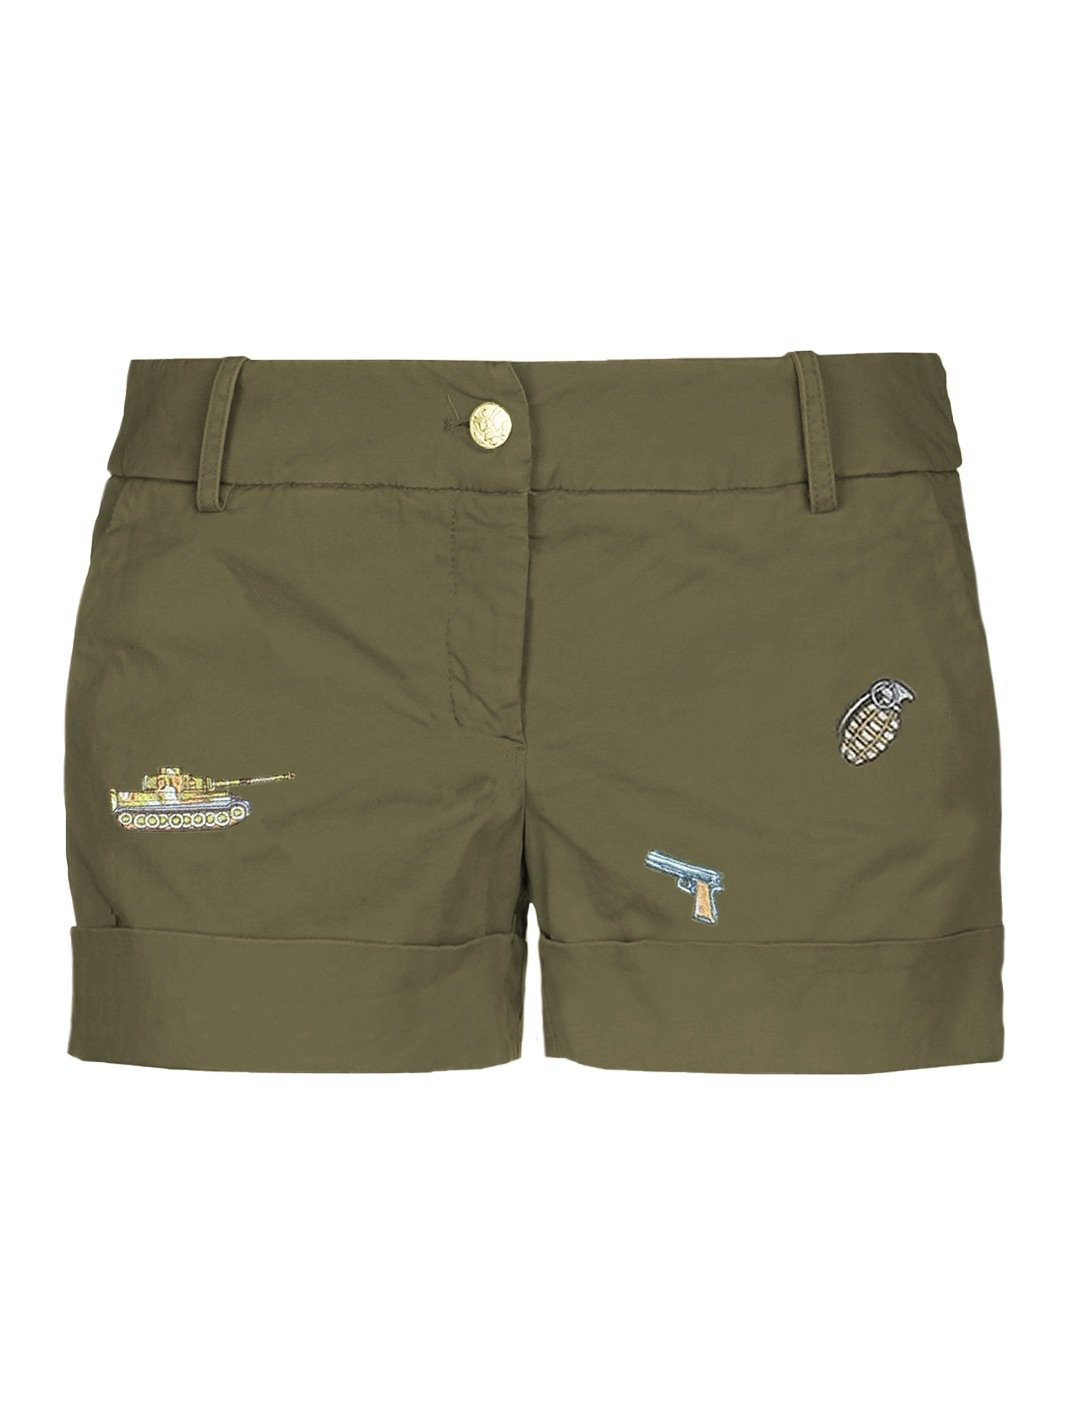 Army-Style Shorts - The Bobby Boga